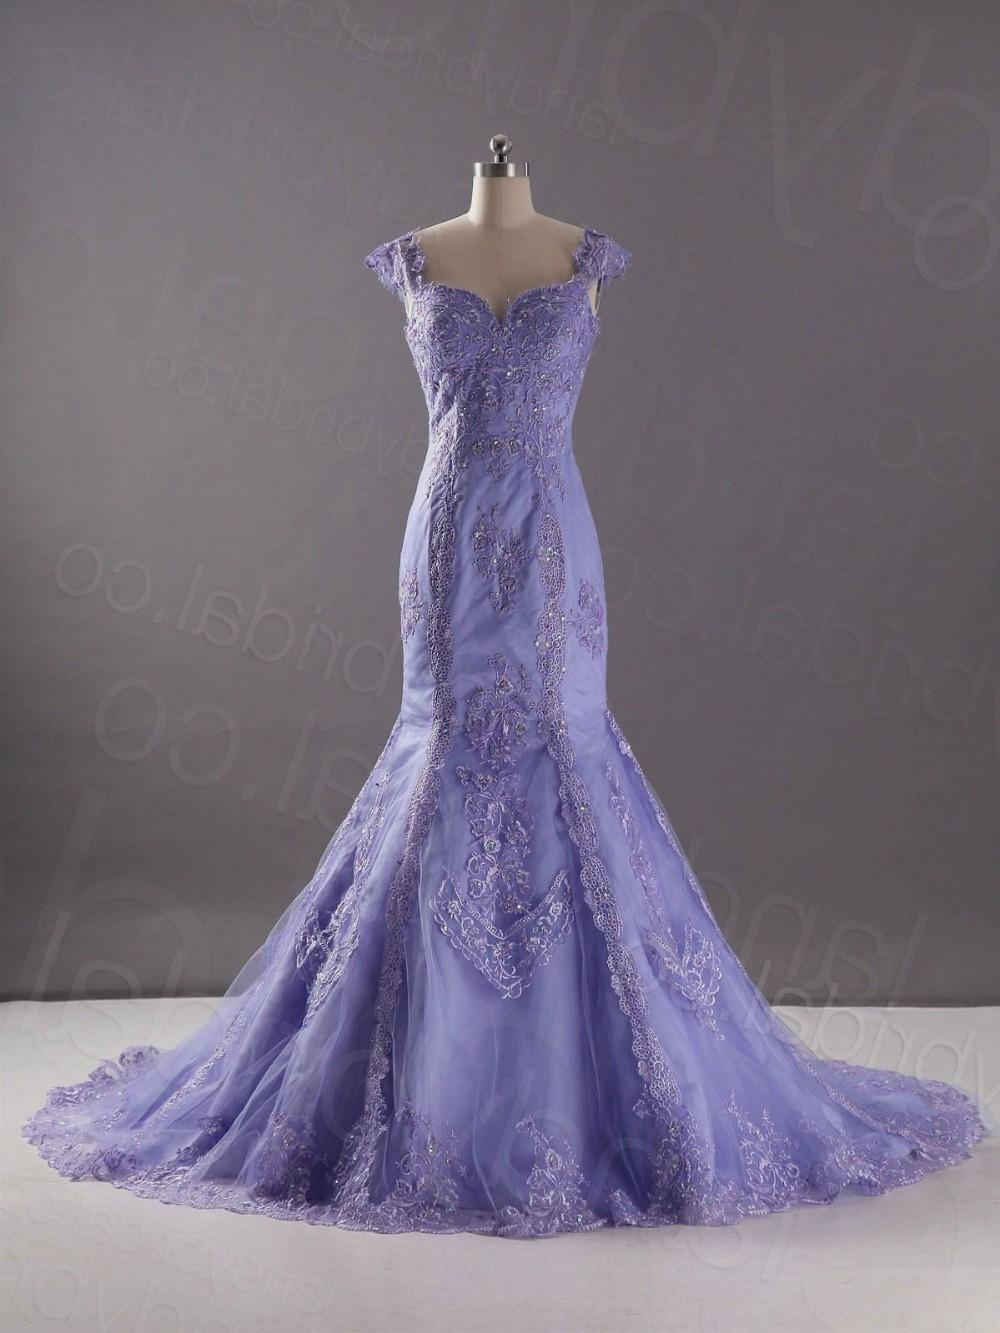 lavender wedding dresses for sale photo - 1